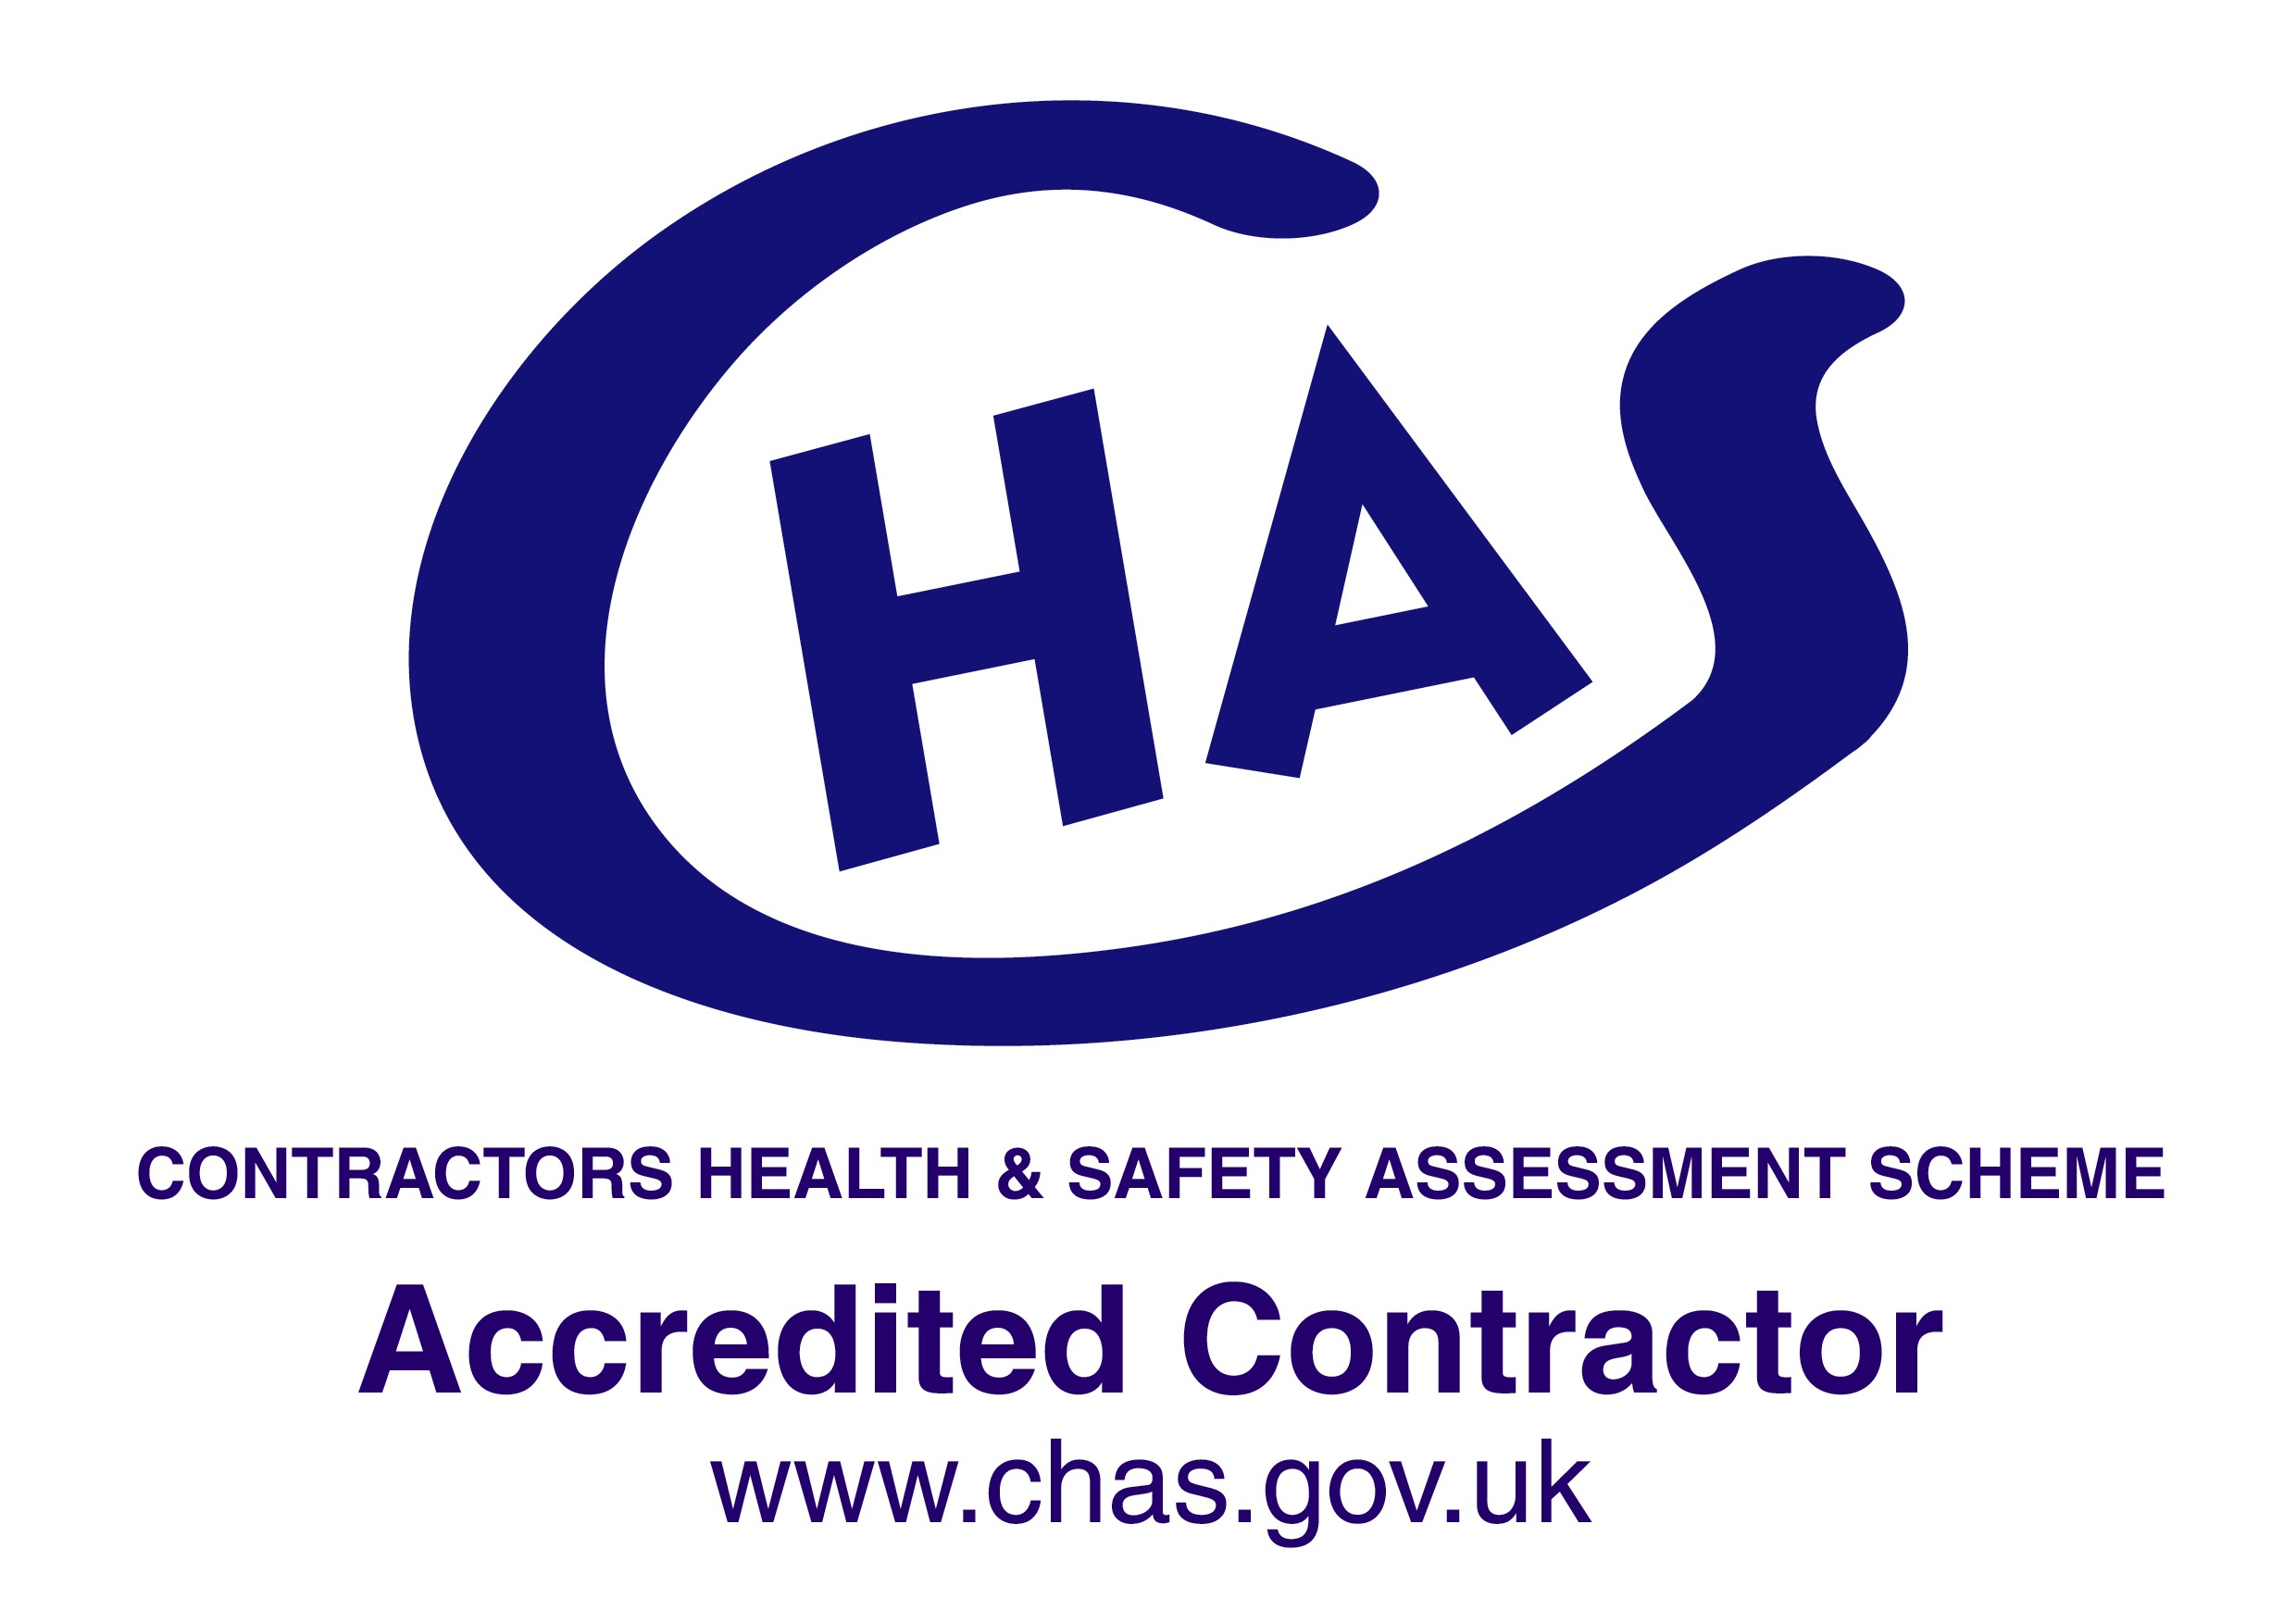 CHAS Certificate Logo